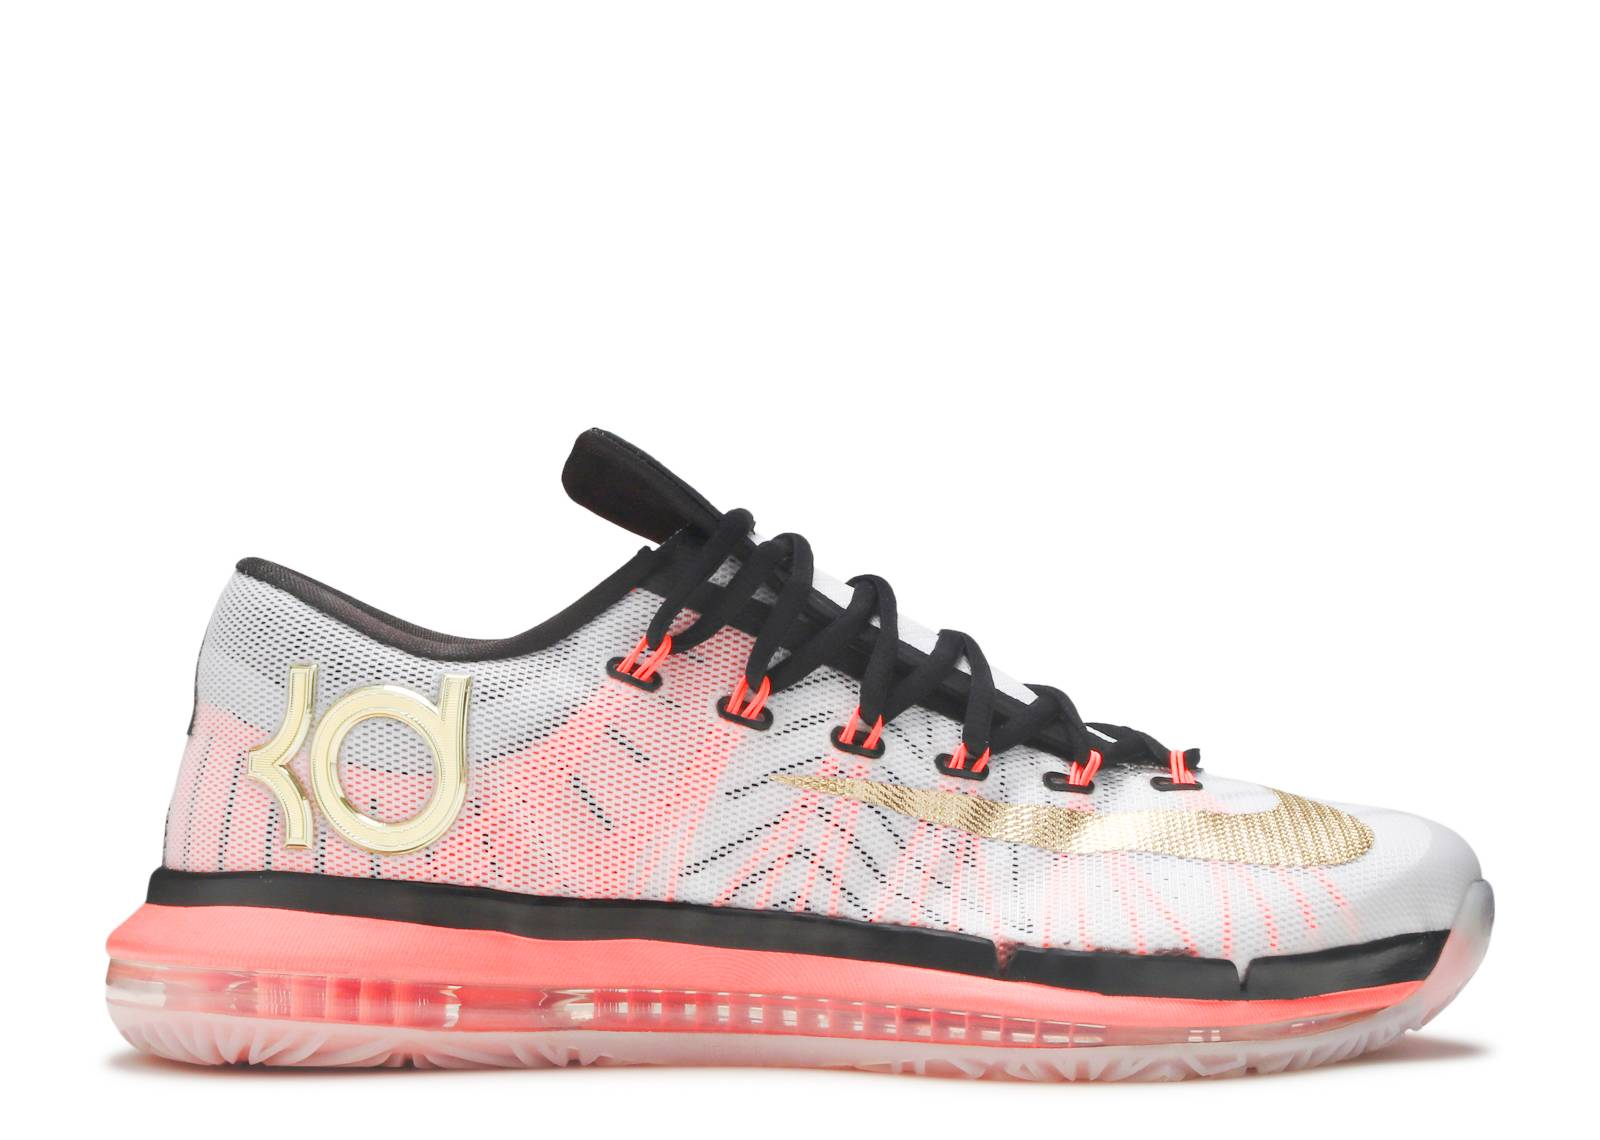 the best attitude 534fd 0e690 ... promo code kd 6 elite gold nike 642838 100 white metallic gold pure  platinum black flight